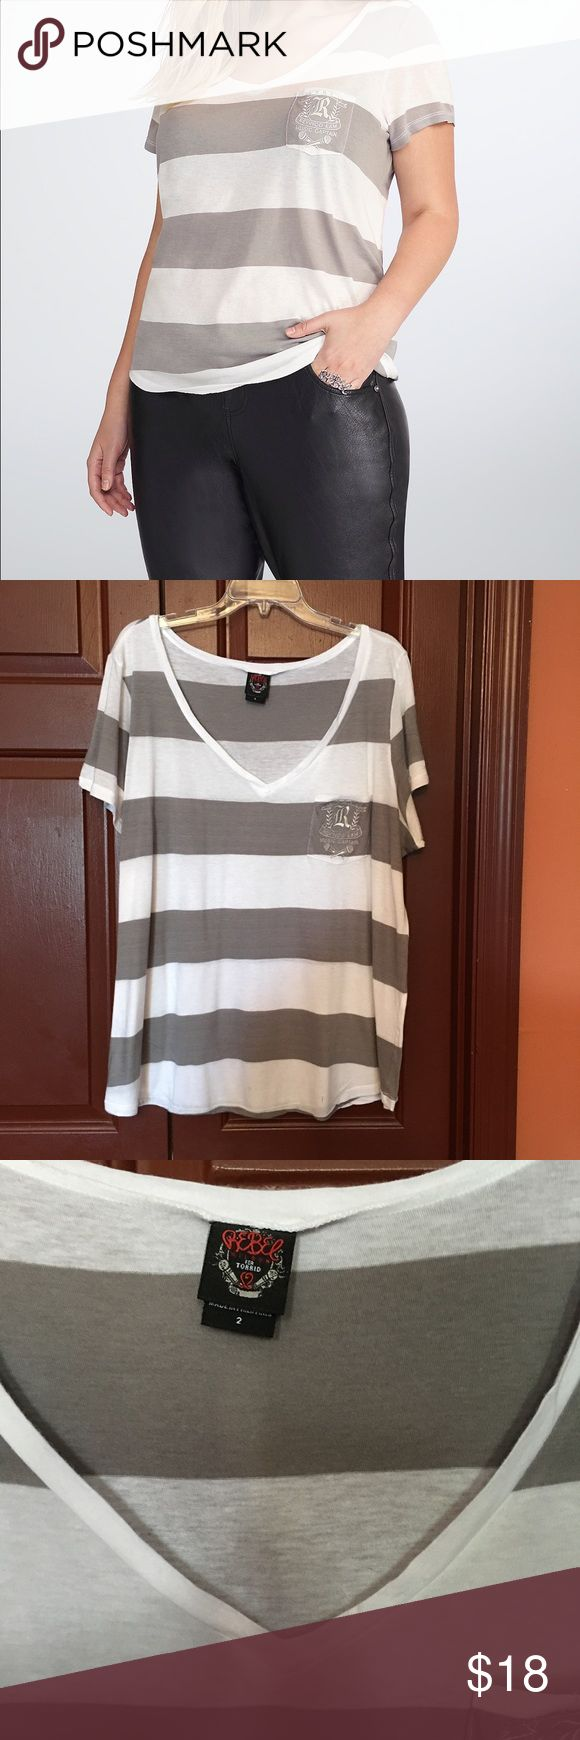 Rebel Wilson striped gray and white tee, 2X Thin lightweight pocket tee, Size 2X, cute gray and white, in very good condition torrid Tops Tees - Short Sleeve